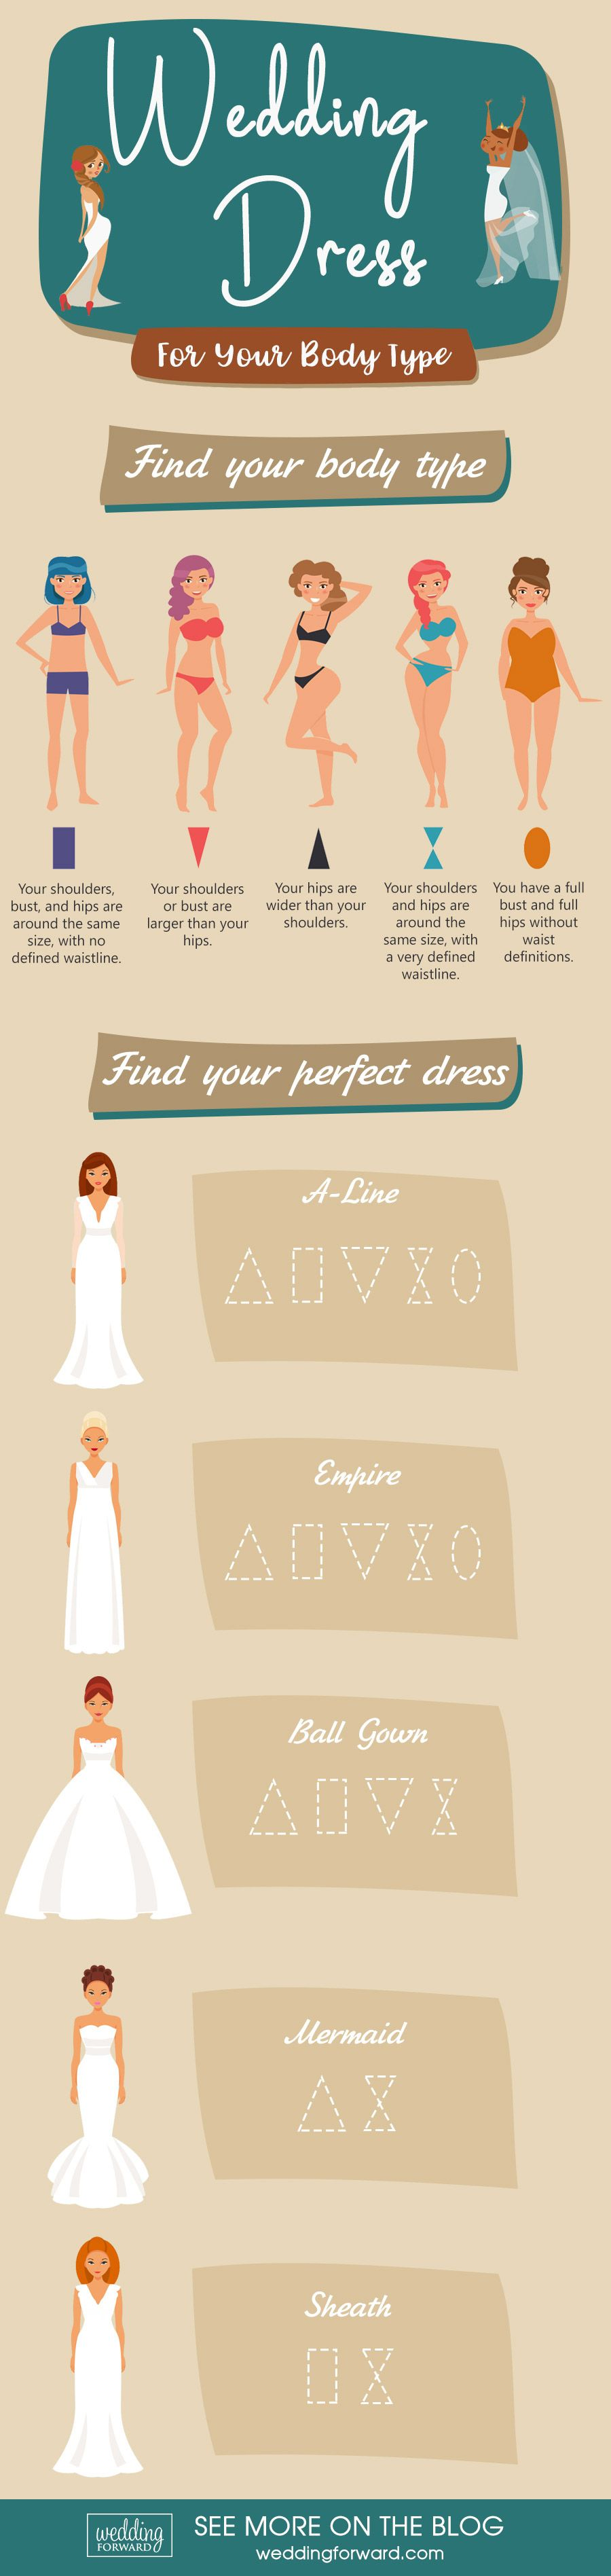 Wedding dress for body type  Choosing The Right Wedding Dress For Your Body Type  See more